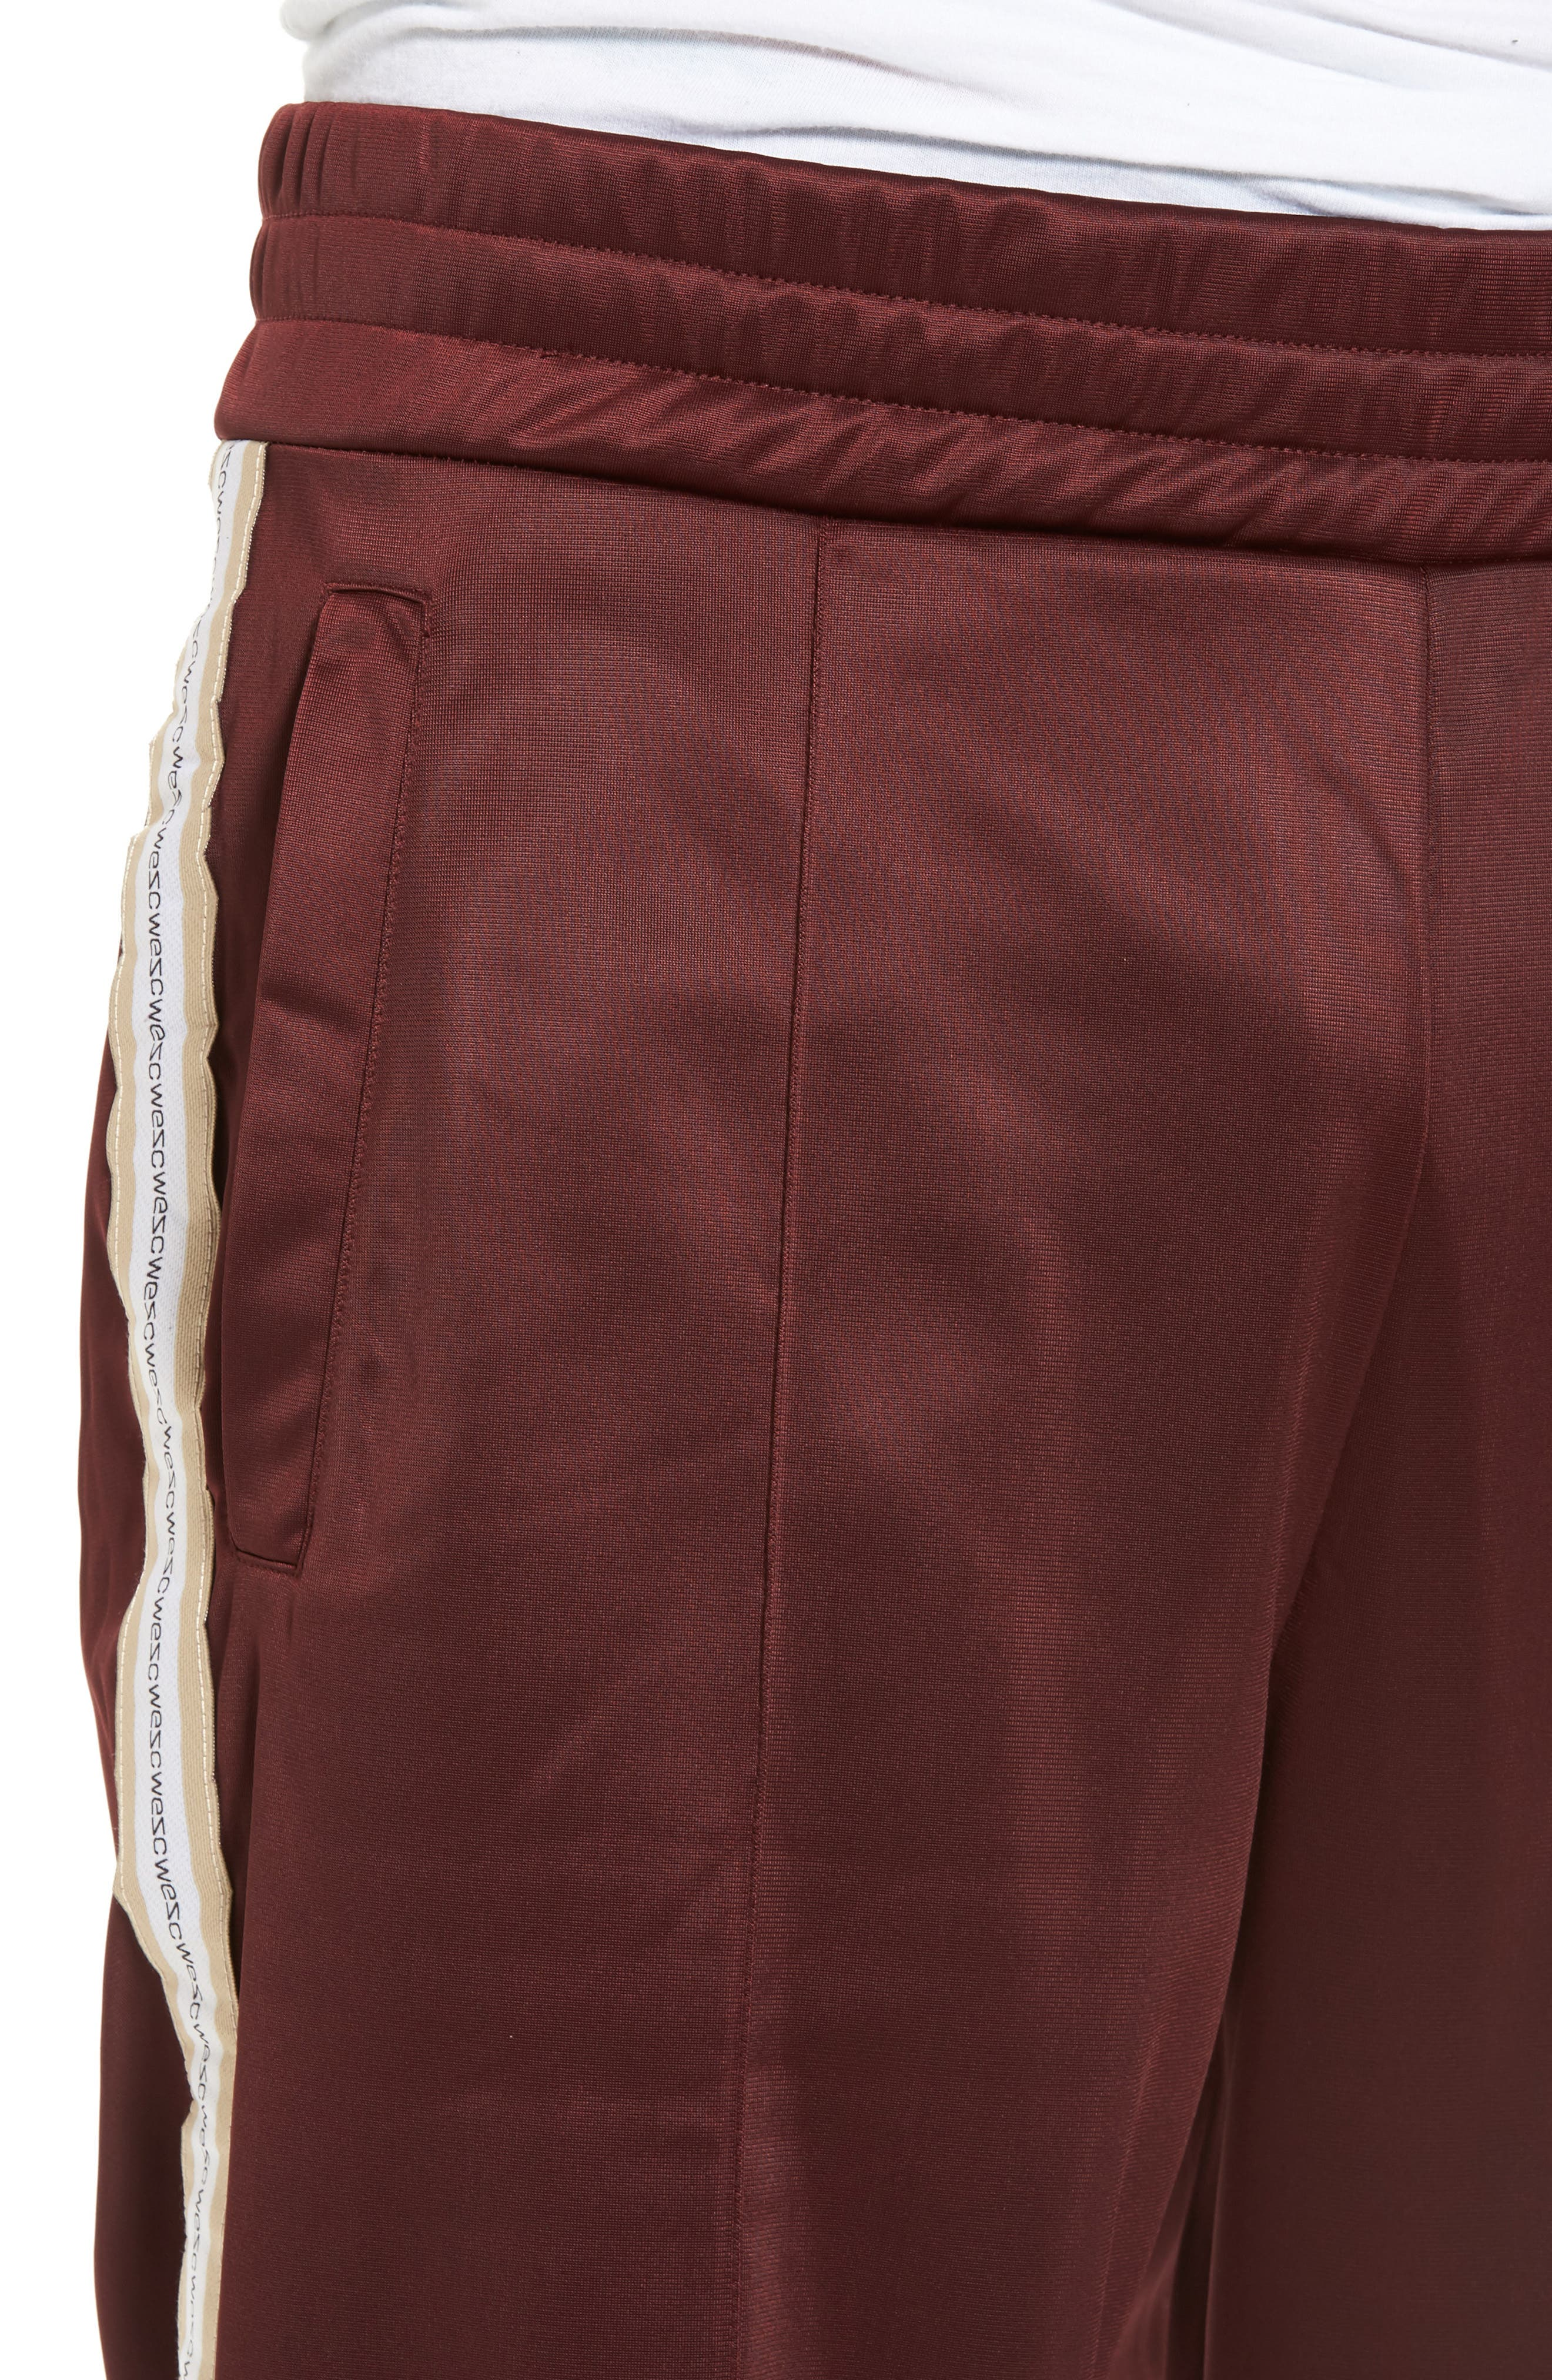 Marcel Track Pants,                             Alternate thumbnail 4, color,                             605